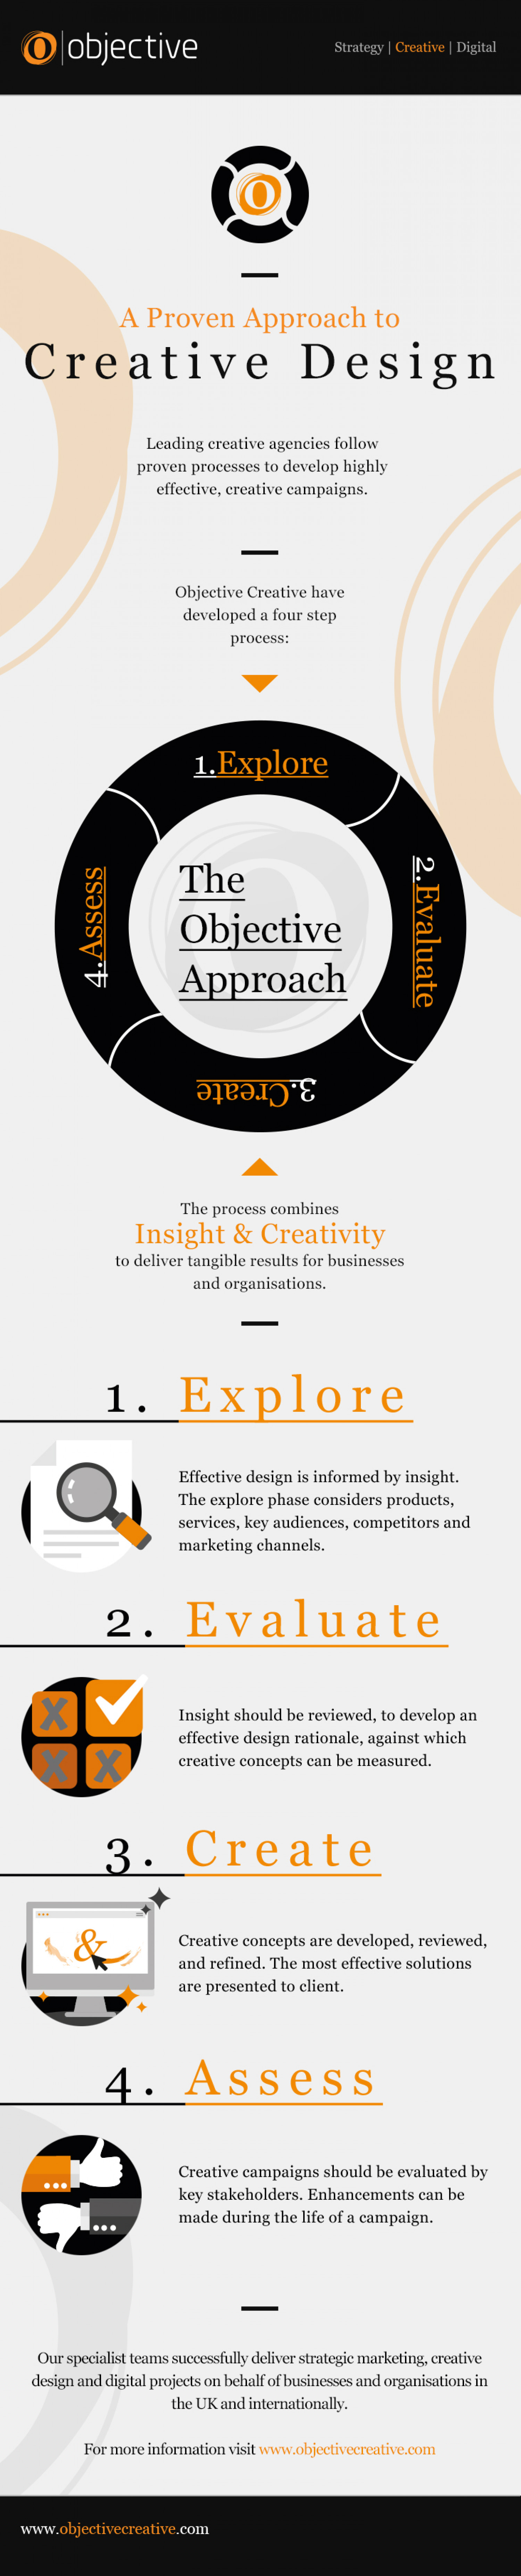 A Proven Approach to Creative Design Infographic